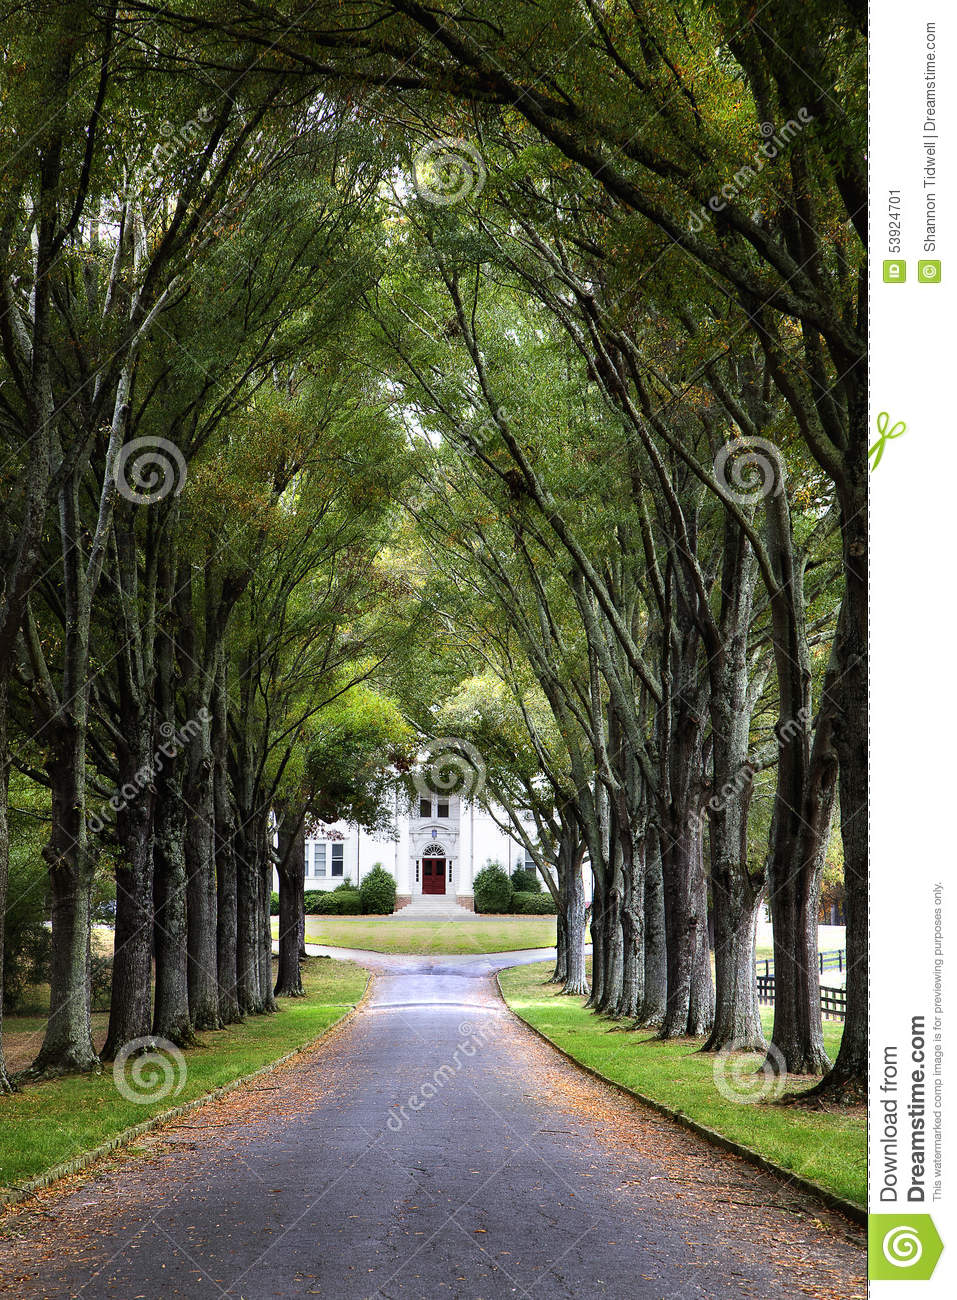 Canopy of trees over road to historic home stock photo for Canopy of trees